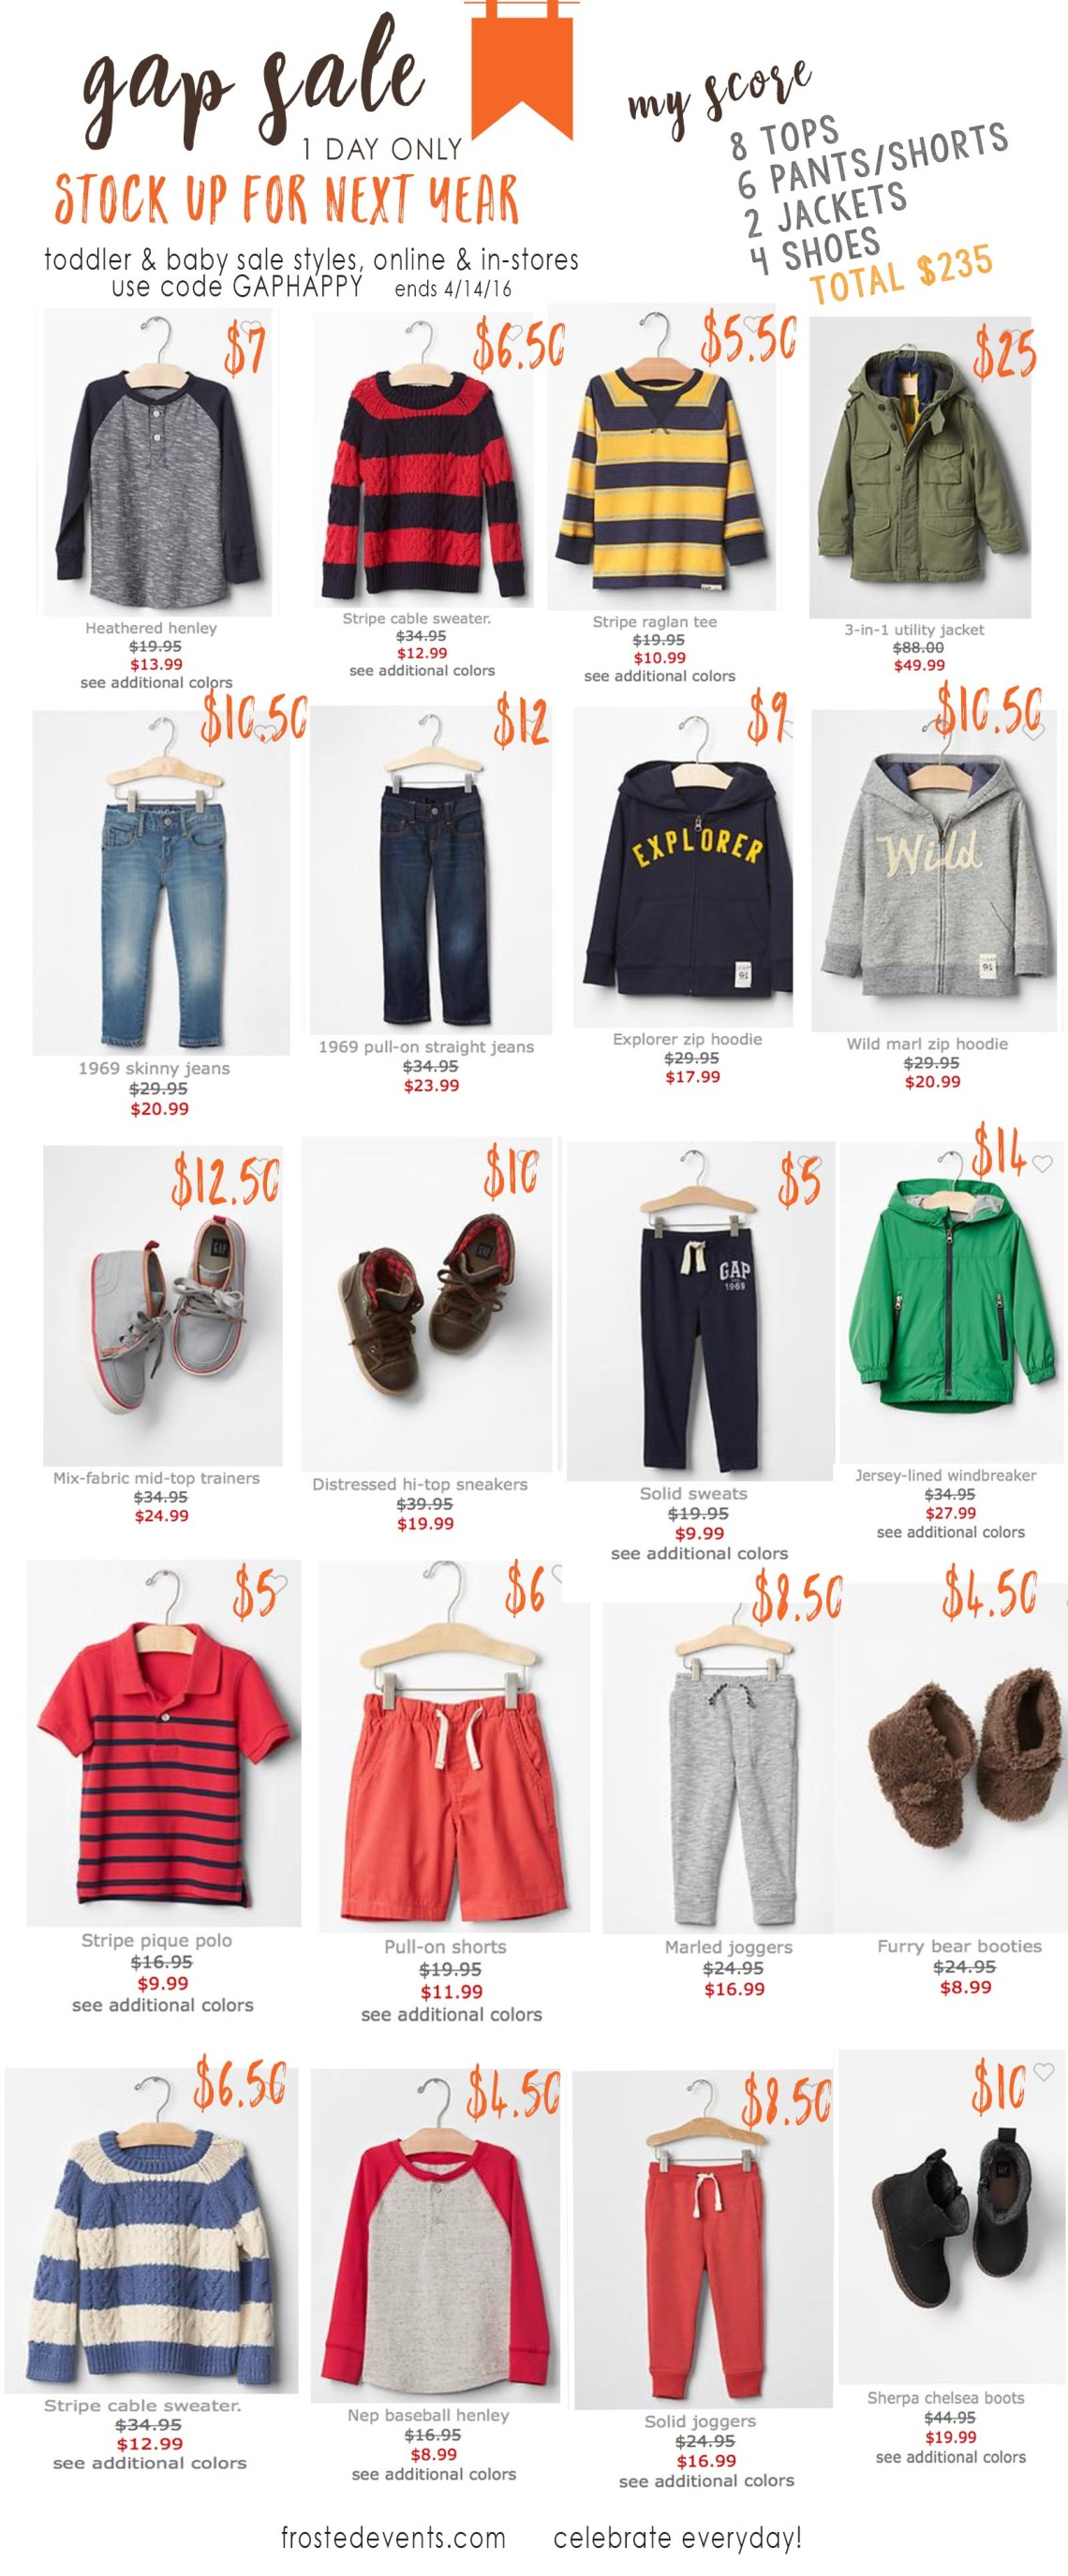 babyGap and Gap Kids Big Sale How to Buy Kids Clothes for Less  Cute Kids Clothes Cheap Brand Name Gear